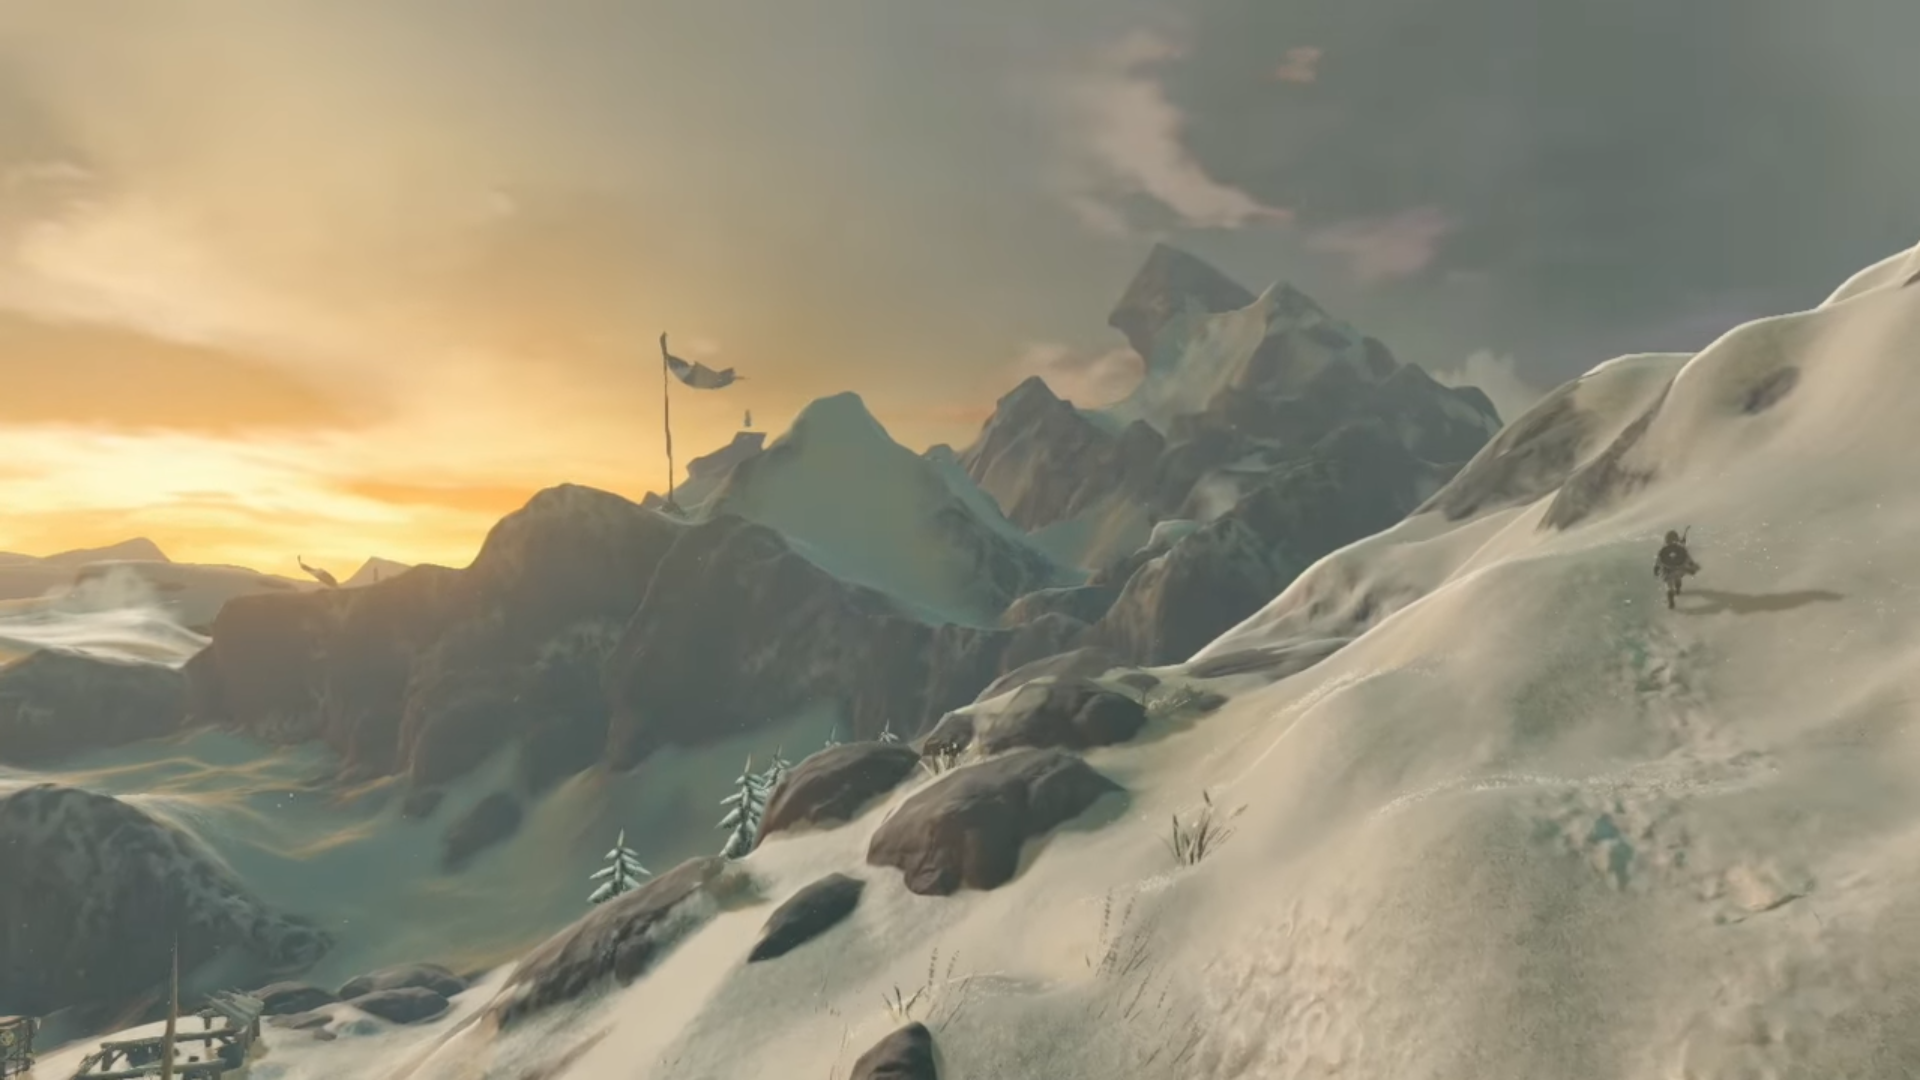 Breath Of The Wild Background Engine Breath Of The Wild Legend